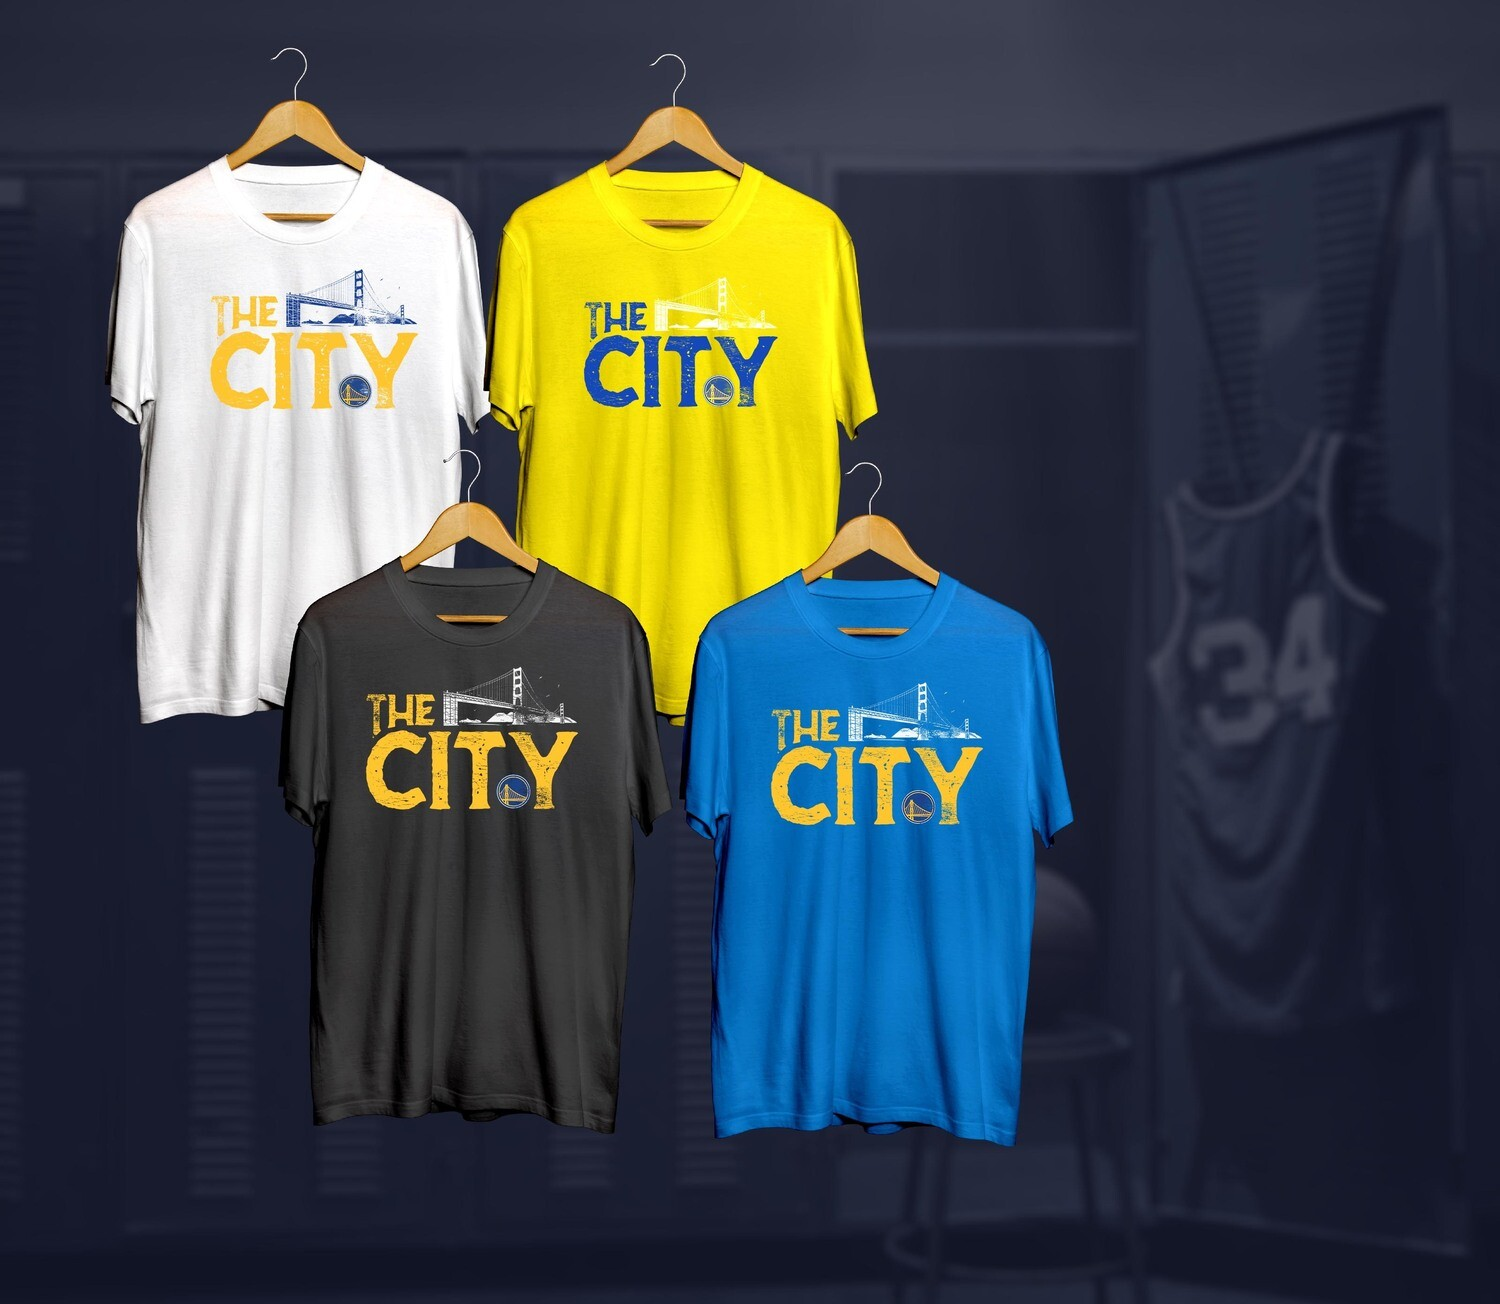 Golden state The city  t-shirts